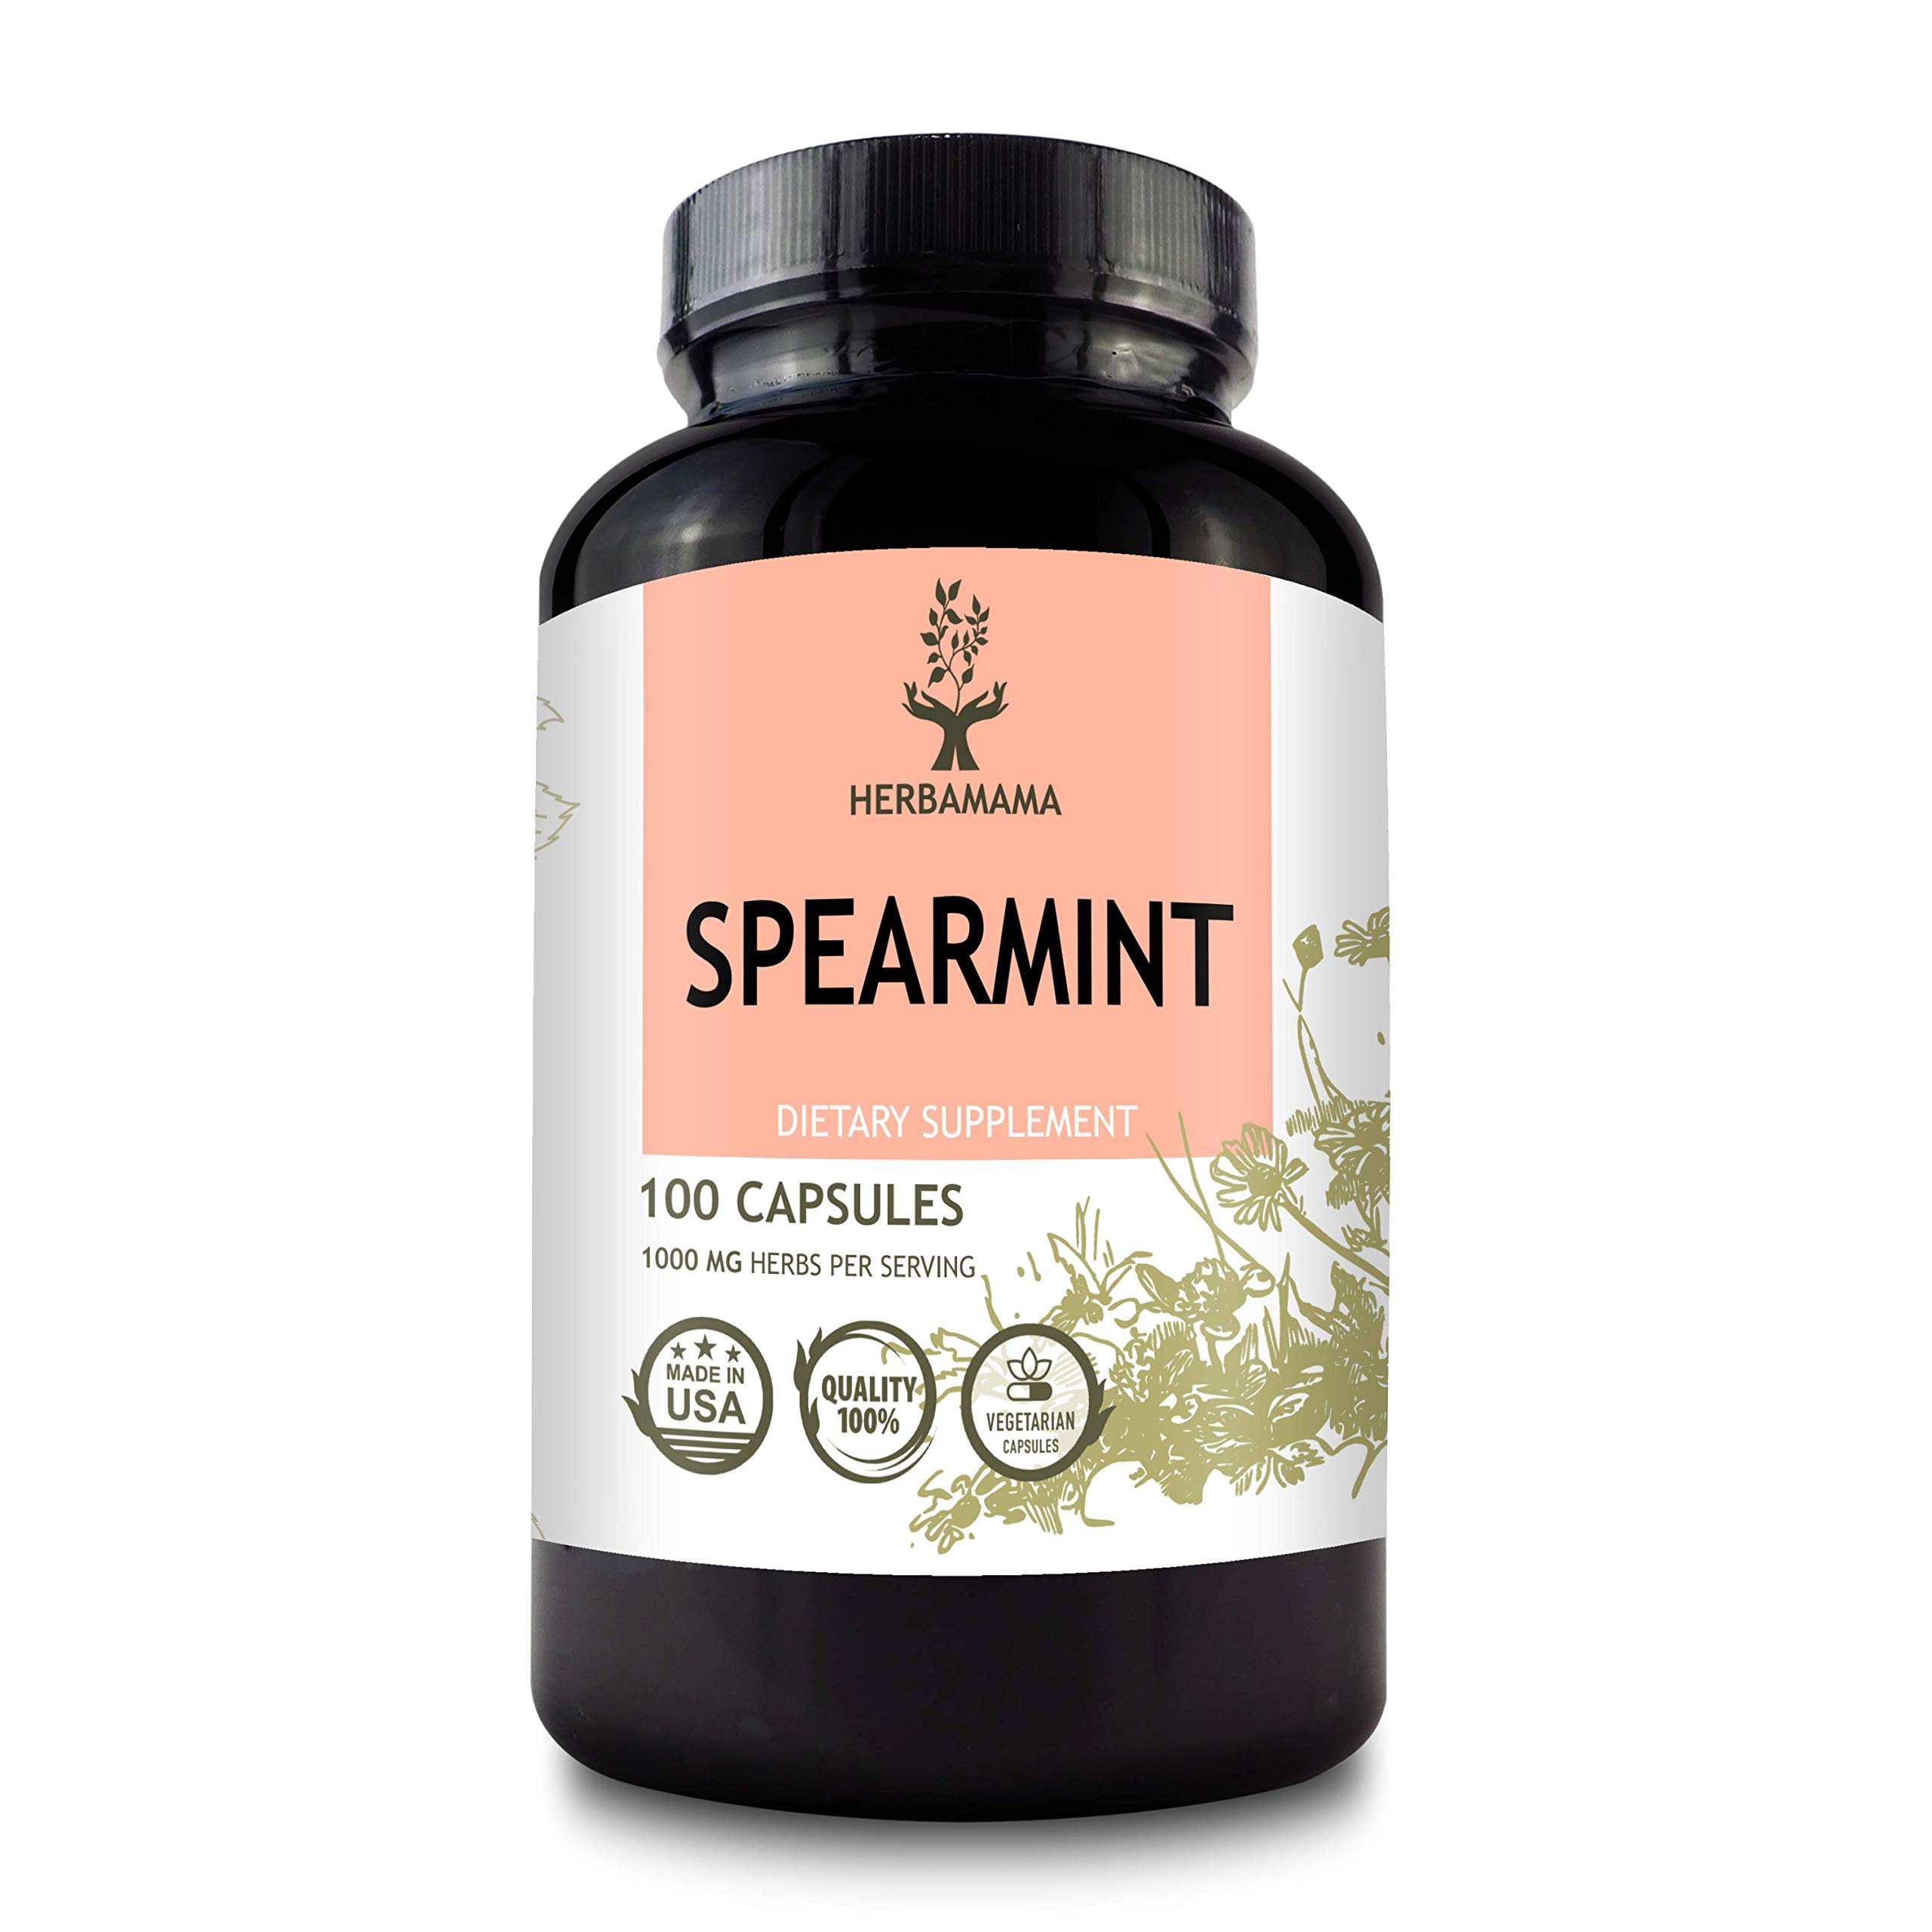 HERBAMAMA Spearmint 100 Capsules - 1000 mg - Organic Mentha Spicata Dietary Daily Supplement - Natural Support for Digestive, Heart & Respiratory Function - for Stress Relief - Vegan, Non-GMO